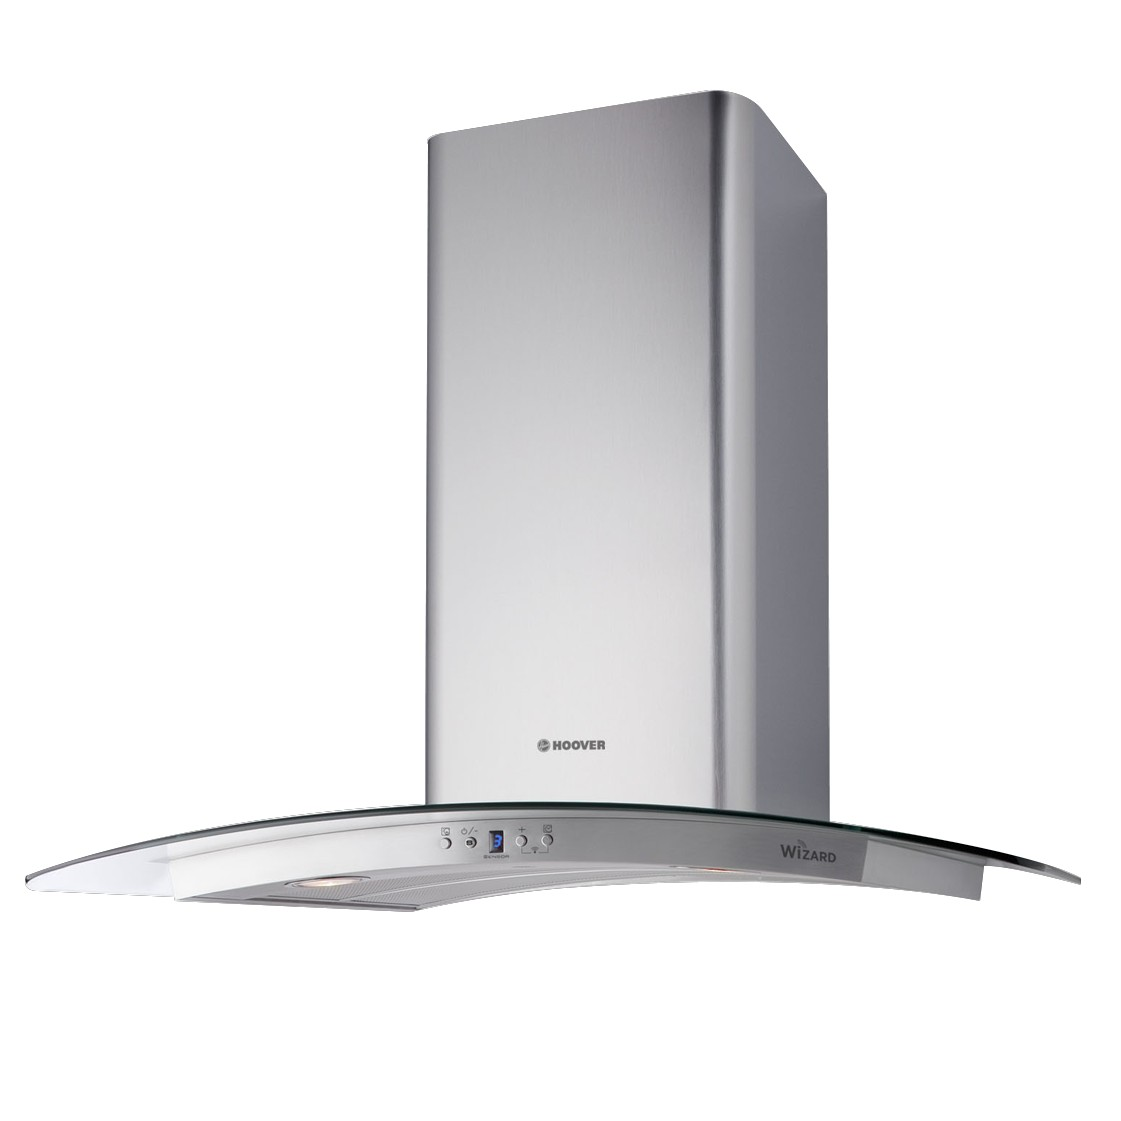 Hoover Wizard HHV67SLX Built-In Wi-Fi Cooker Hood